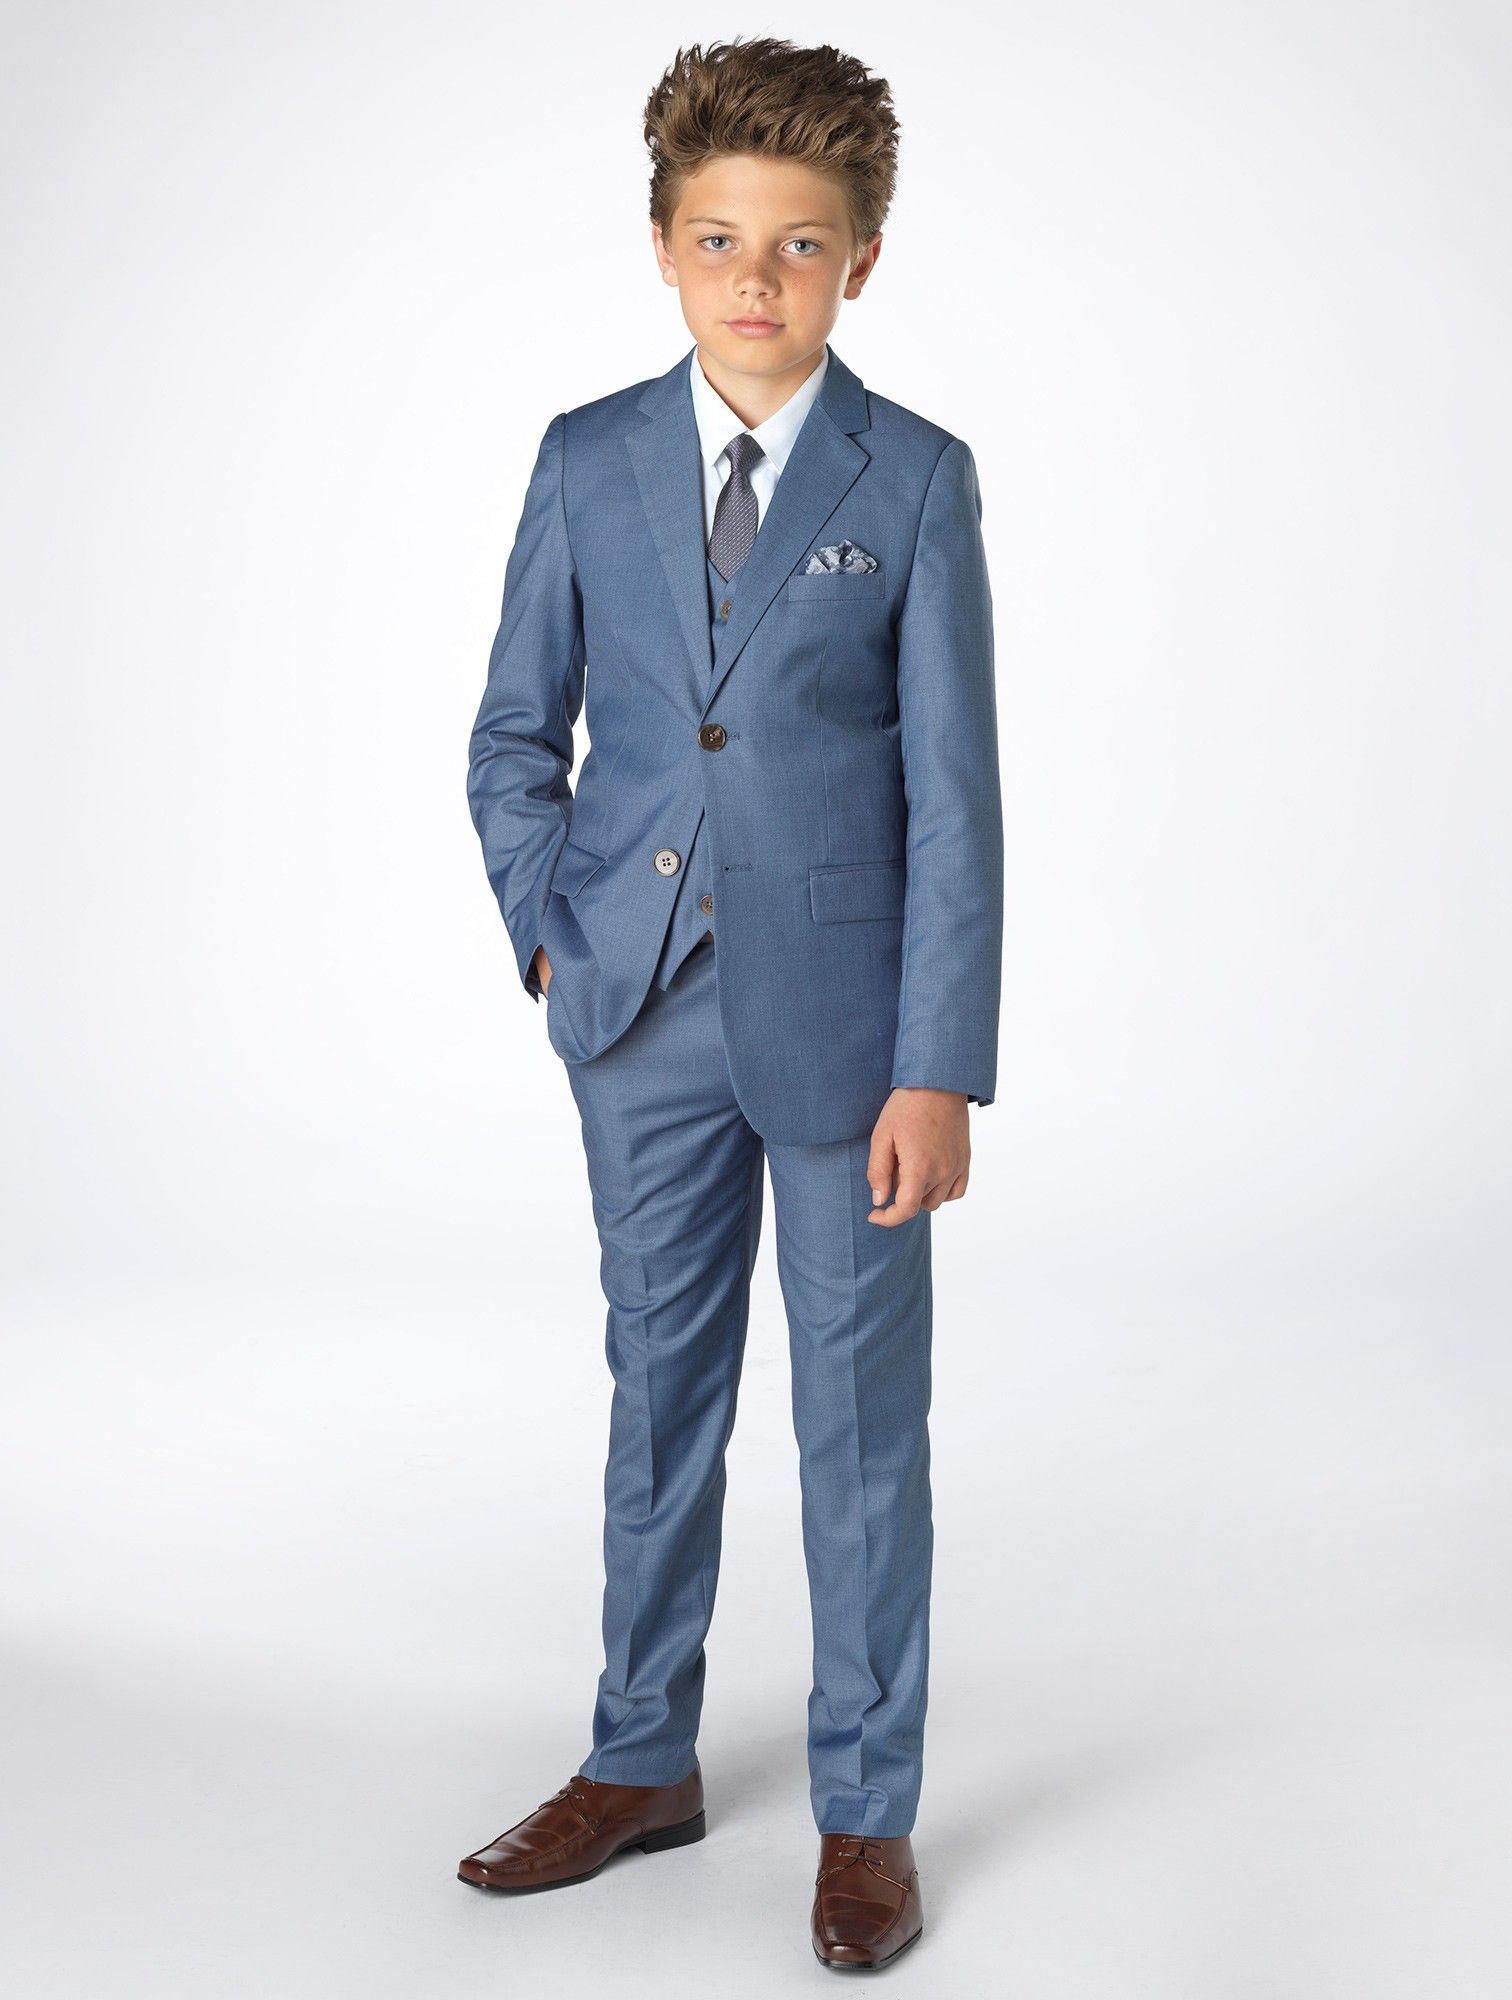 Boys blue chambray wedding suit - Sampson | Pinterest